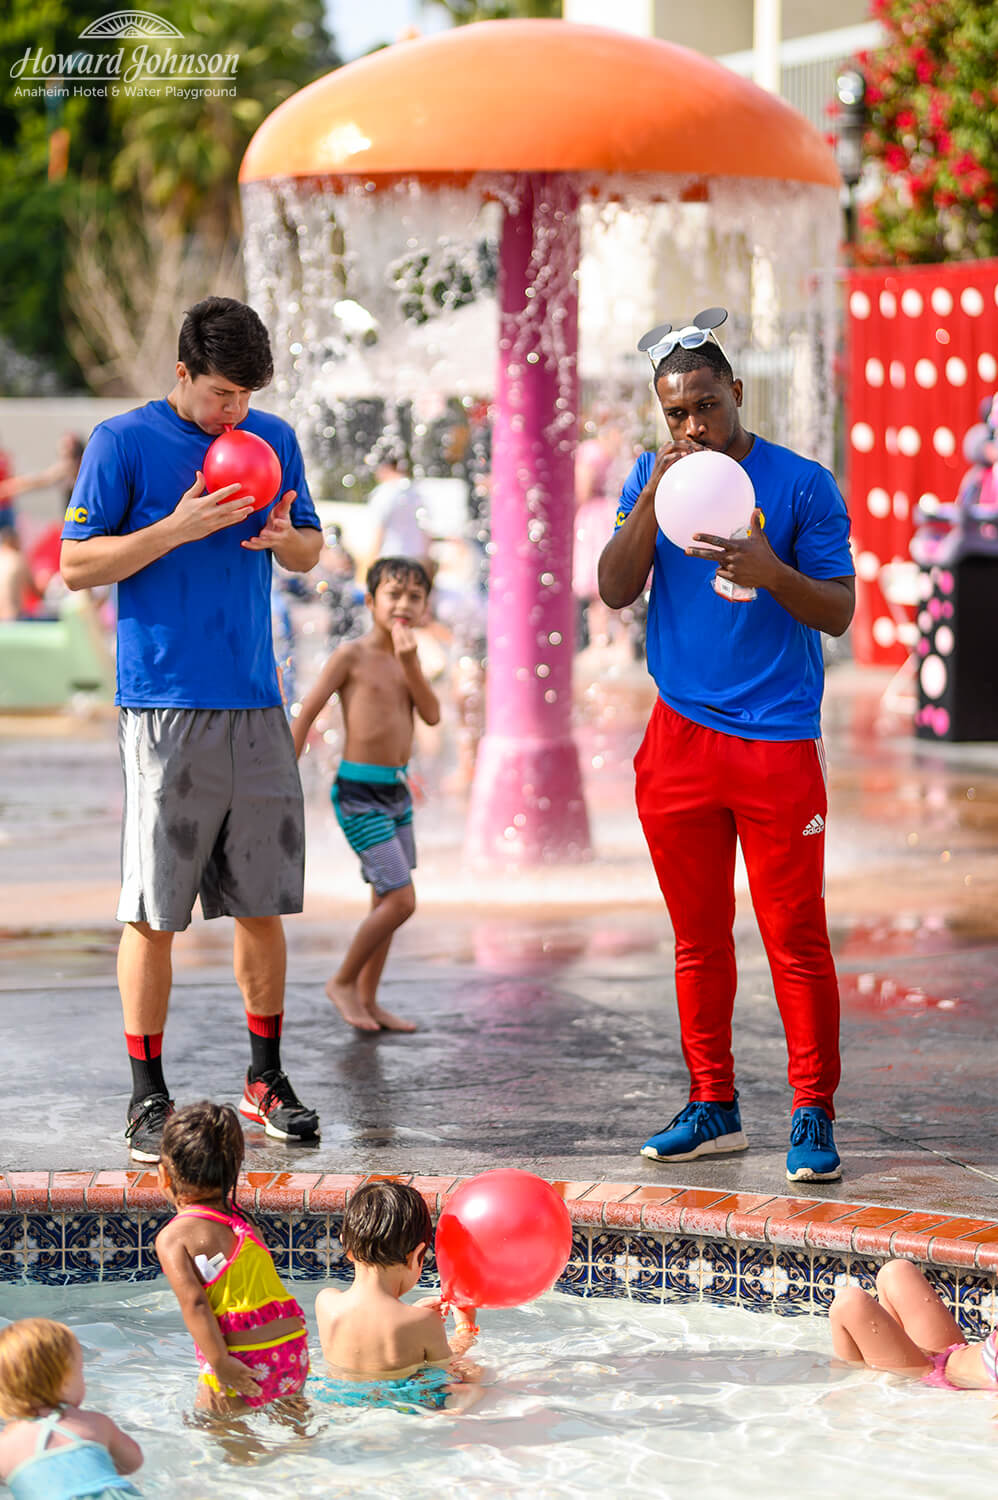 two men blow up balloons near a pool at Howard Johnson Anaheim hotel as children watch on and play in the pool